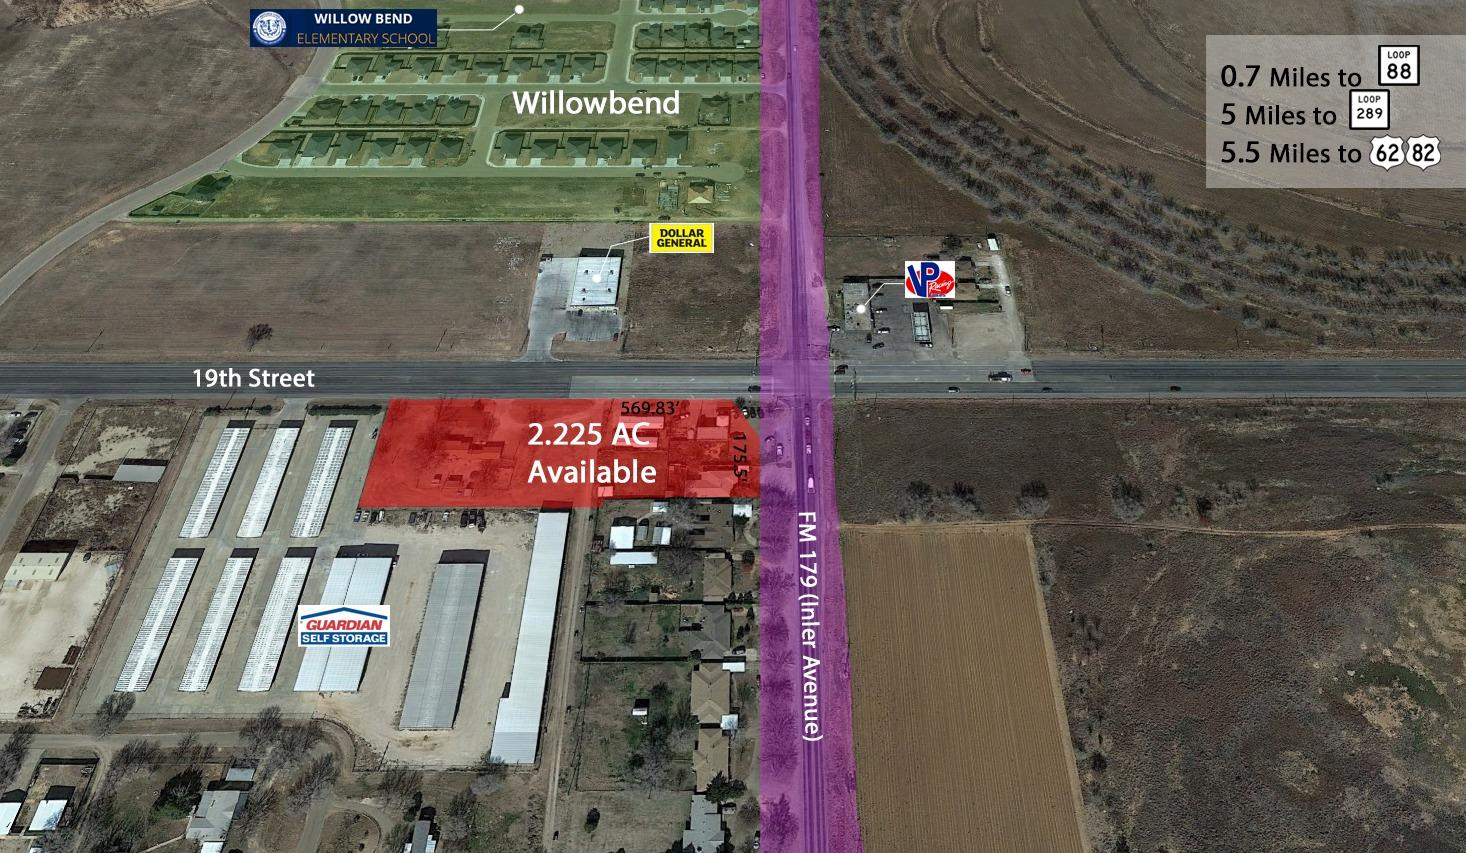 Re-development land available for sale. High traffic area between Shallowater and Wolfforth with over 15,000 vehicles per day.   Future Re-development Land  Inler Ave (FM 179) will be Widened to 7 Lanes  Includes 8701, 8703, 8707-19, & 1904 Inler Ave  1 Mile from Proposed Loop 88  High Traffic Area Between Shallowater Schools and Frenship Schools in Wolfforth